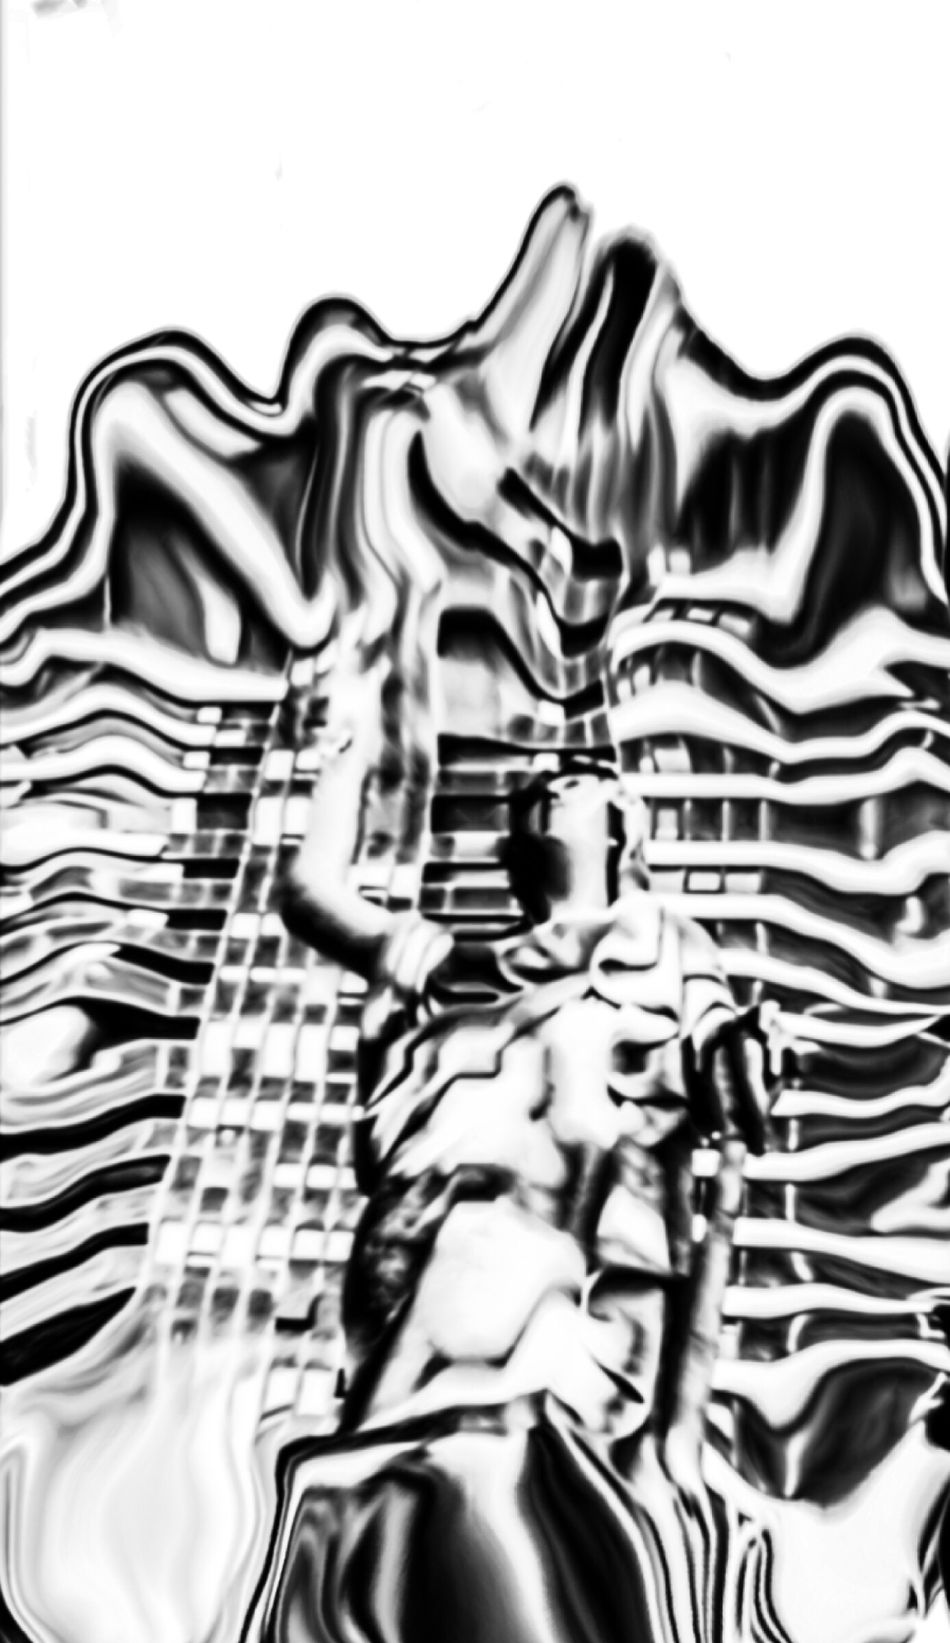 The End... Is Anything Out There Real? Forgotten Dreams New Nightmares Human Condition Photographic Approximation Same Where